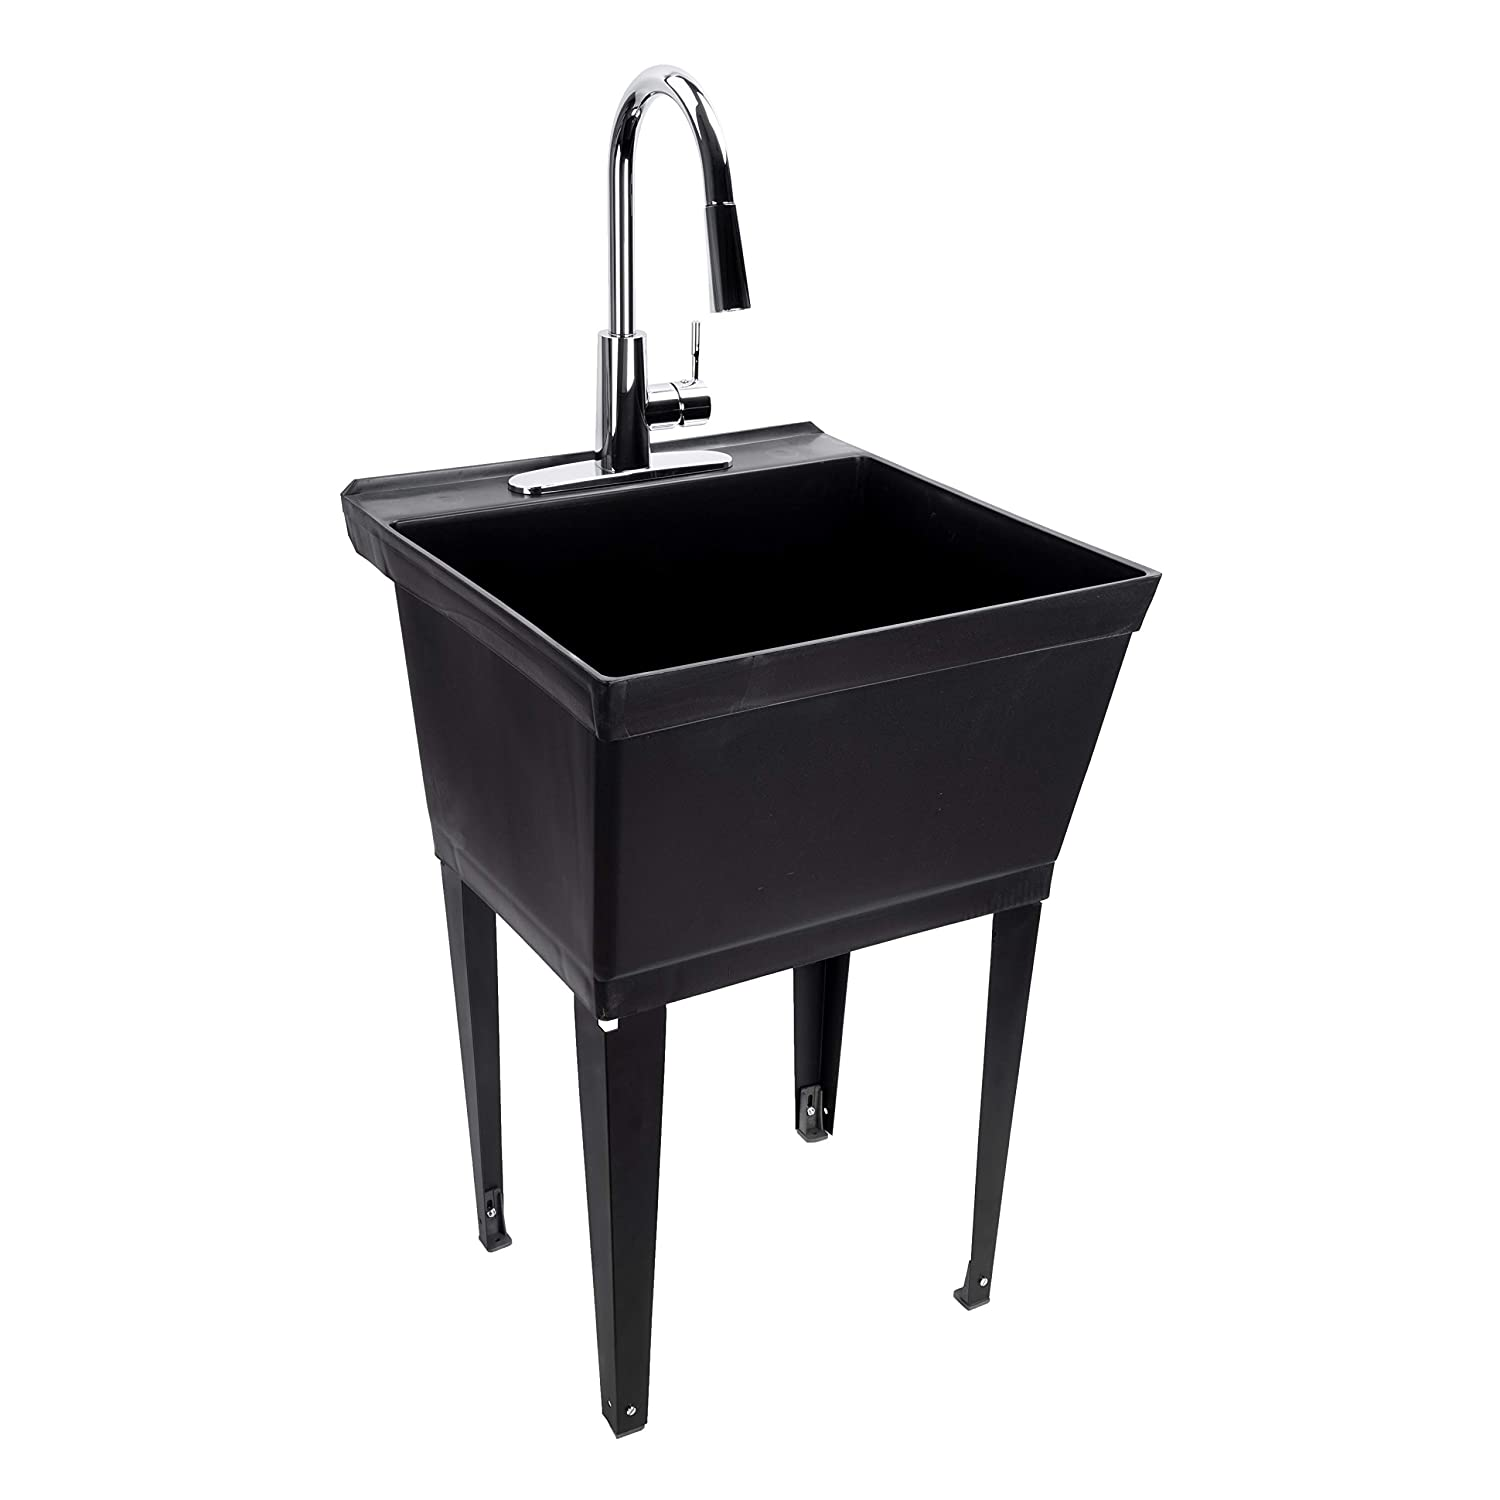 Black Utility Sink Laundry Tub With High Arc Chrome Kitchen Faucet By MAYA - Pull Down Sprayer Spout, Heavy Duty Slop Sinks For Washing Room, Basement, Garage, or Shop, Free Standing Wash Station Tubs